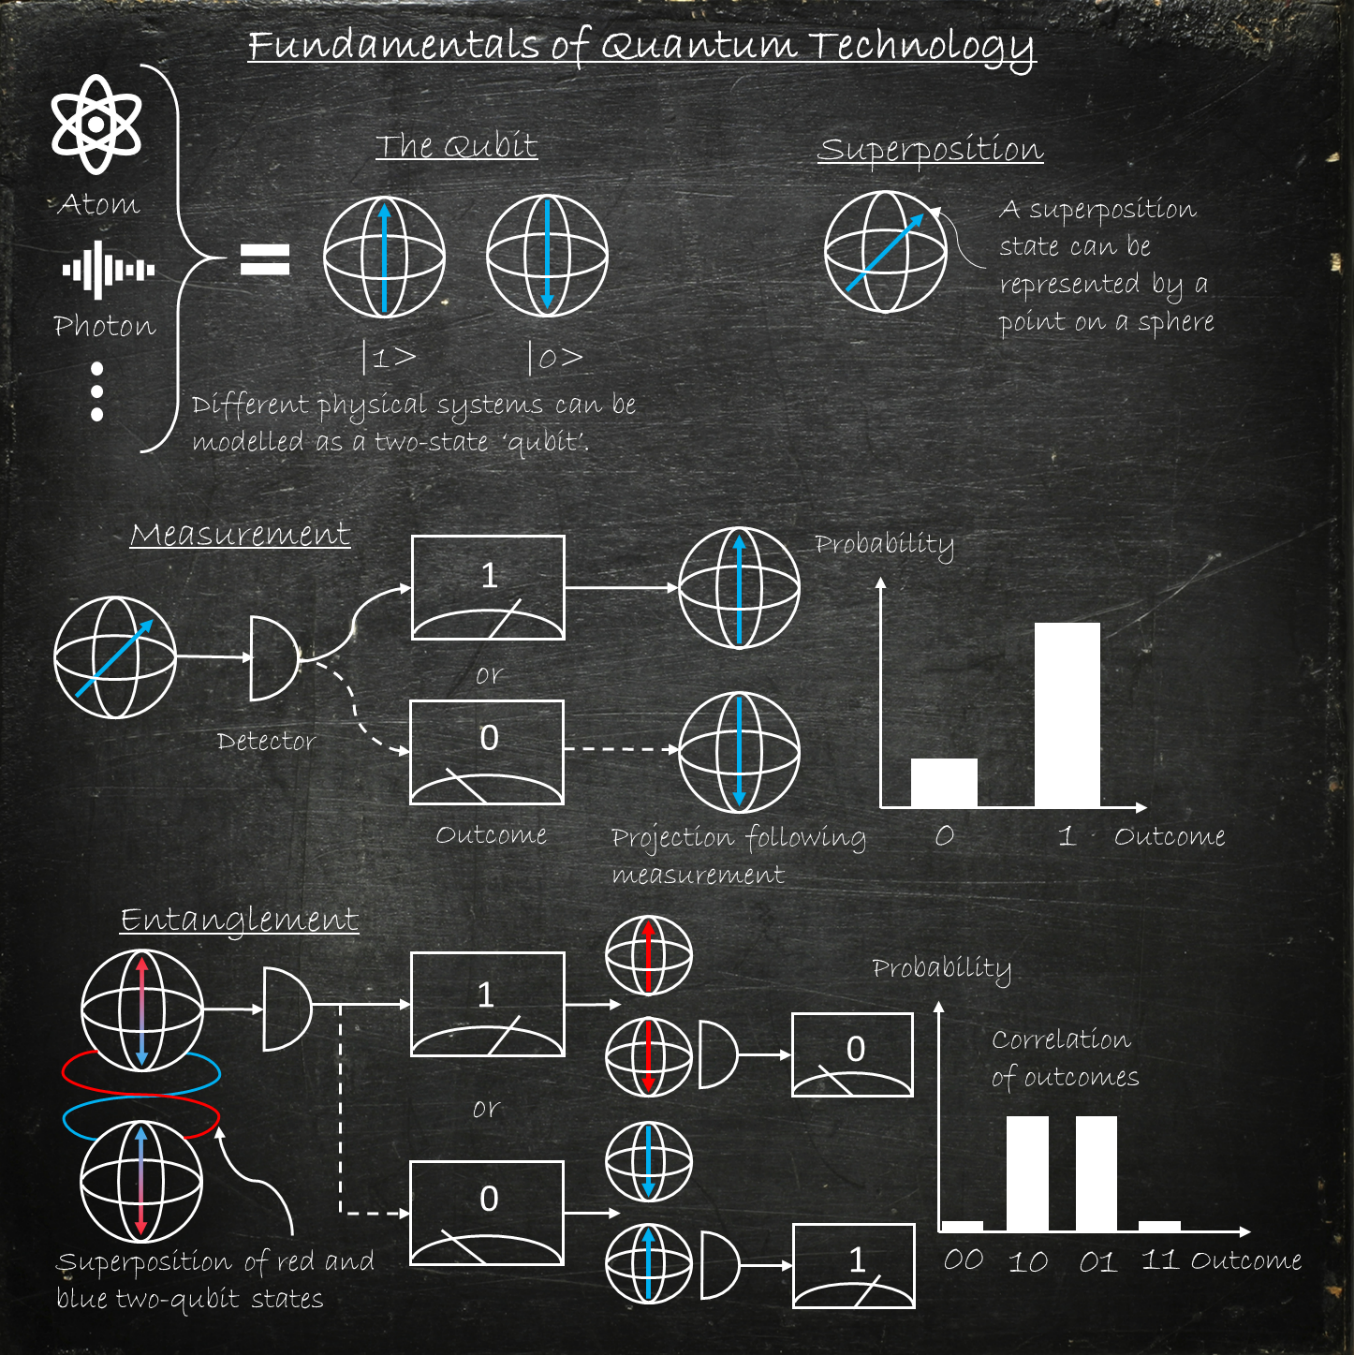 Fundamentals of Quantum Technology